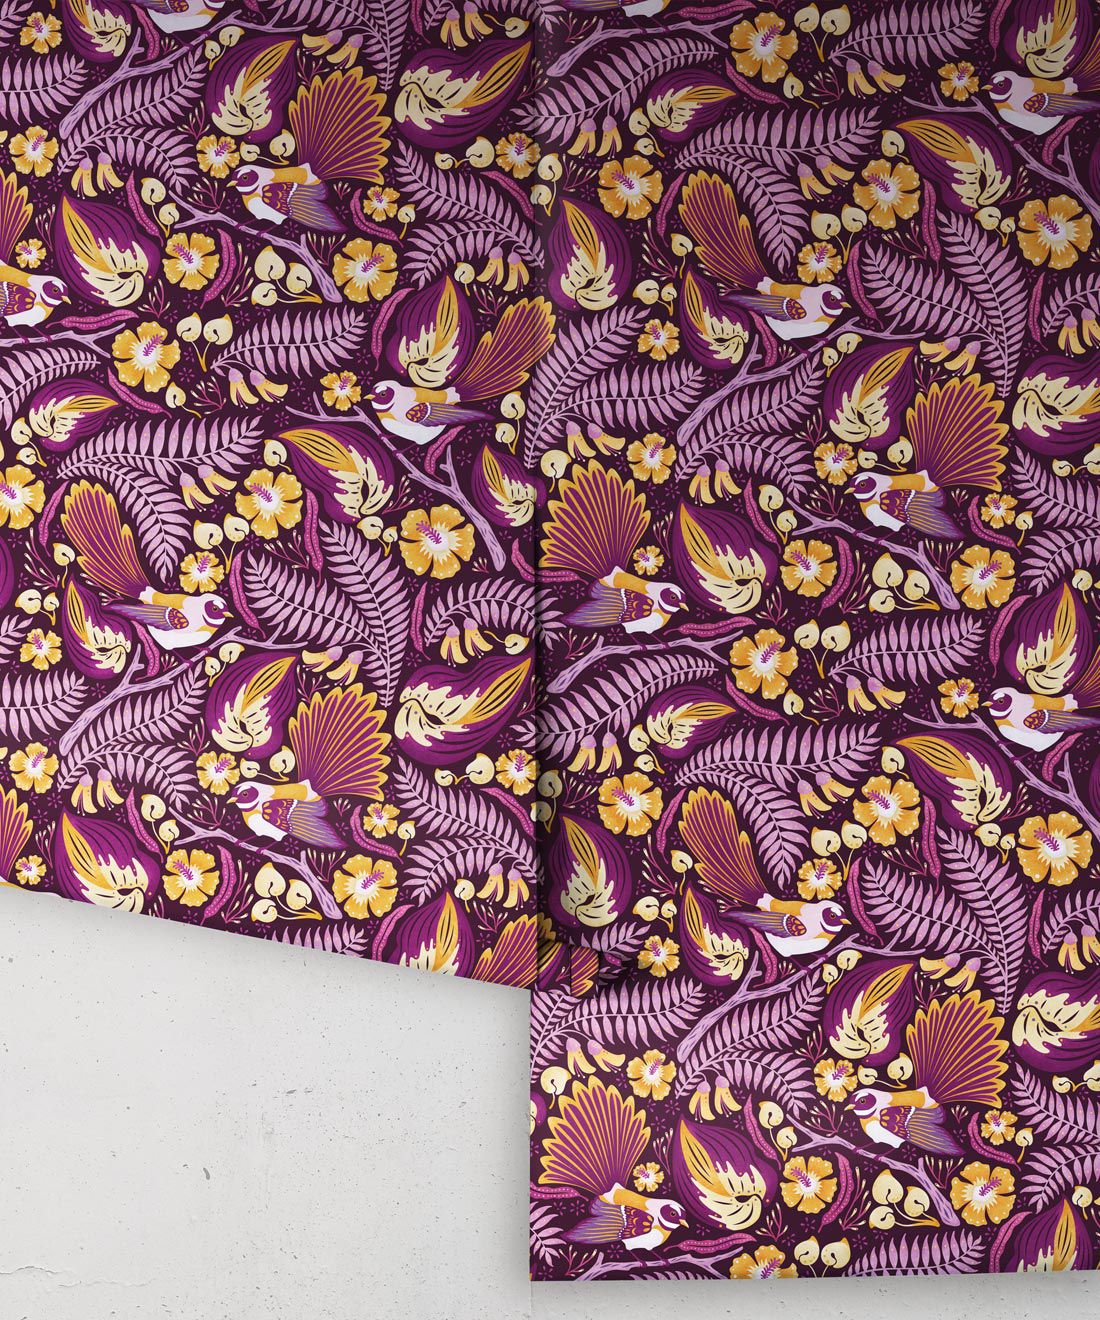 Faintails Wallpaper • New Zealand • Bird Wallpaper • Kowhai Tree • Kowhai Flowers • Purple Wallpaper • Wallpaper Rolls